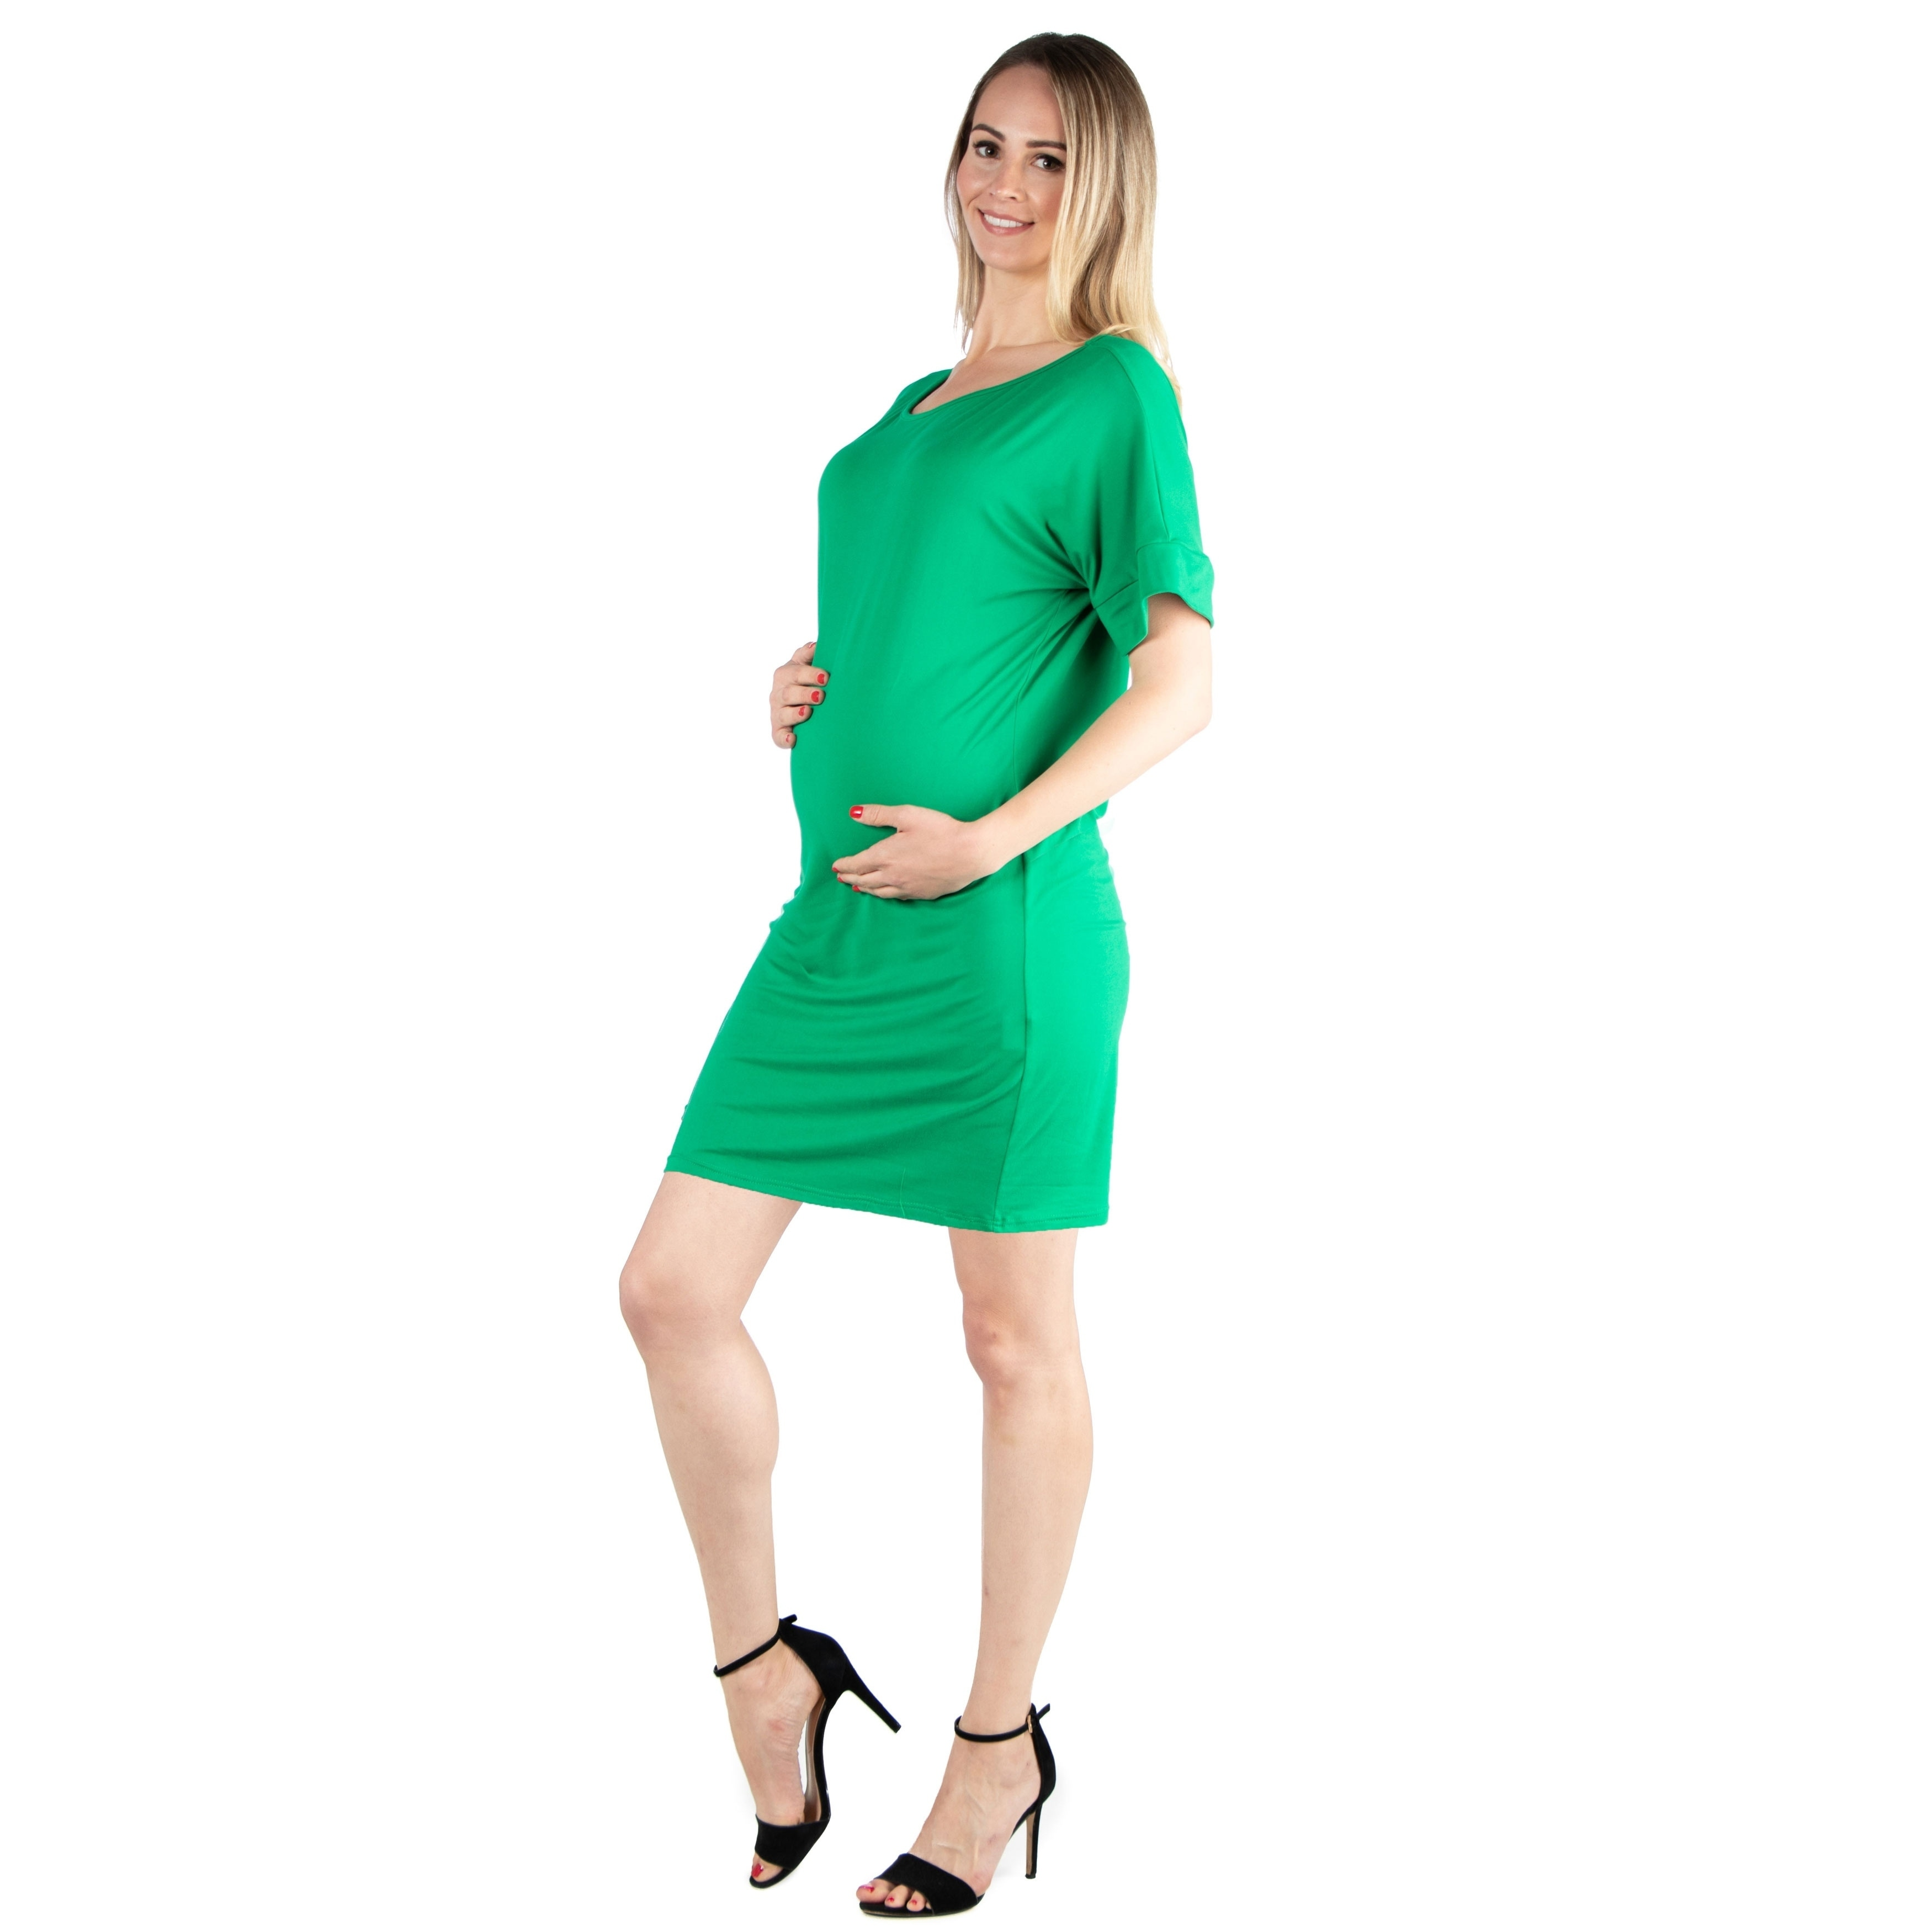 f524625cb3304 Shop 24seven Comfort Apparel Loose Fitting Maternity T Shirt Dress - On  Sale - Free Shipping On Orders Over $45 - Overstock - 28010710